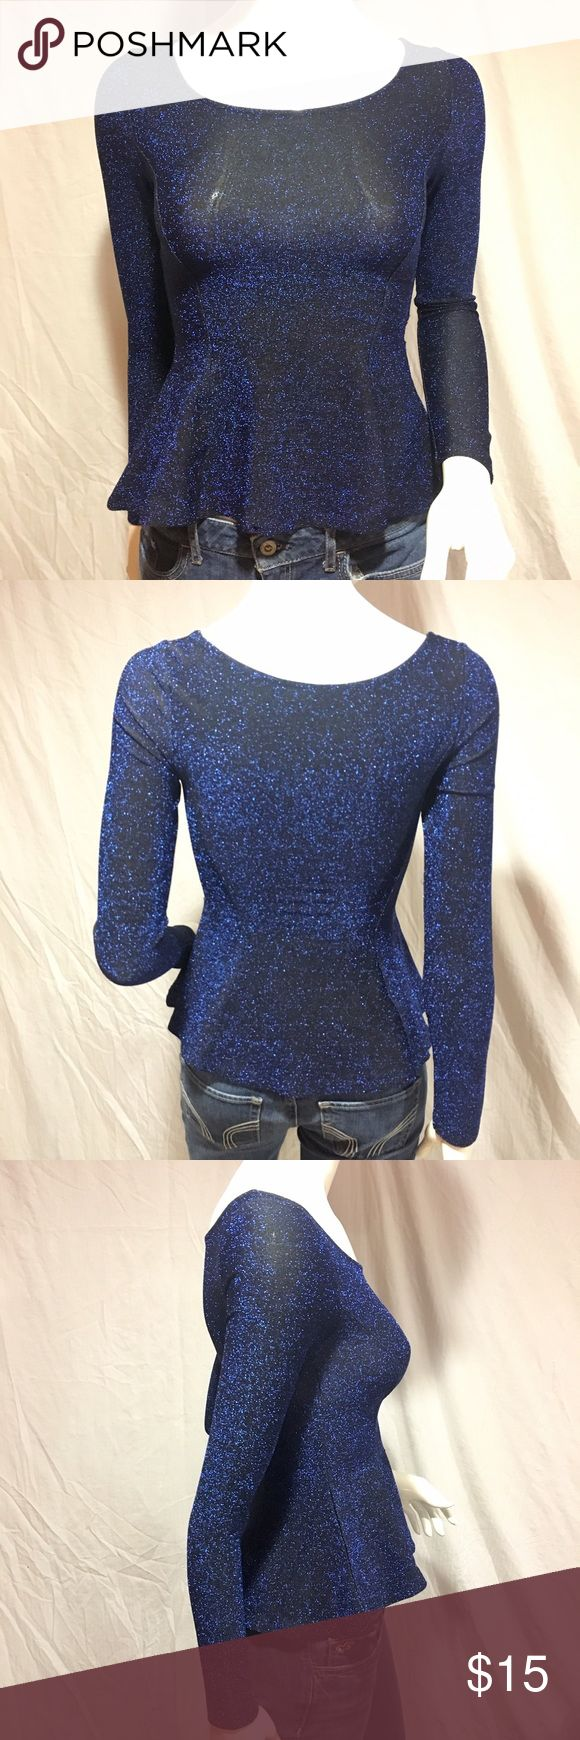 "Sparkly peplum top Black and blue sparkly long sleeve peplum top. Has a scoop neck in the front and back. Length: 21"", armpit to armpit: 13"", waist: 11 1/2"" across. In great condition. Feel free to make me a reasonable offer 💕 Divided Tops Blouses"